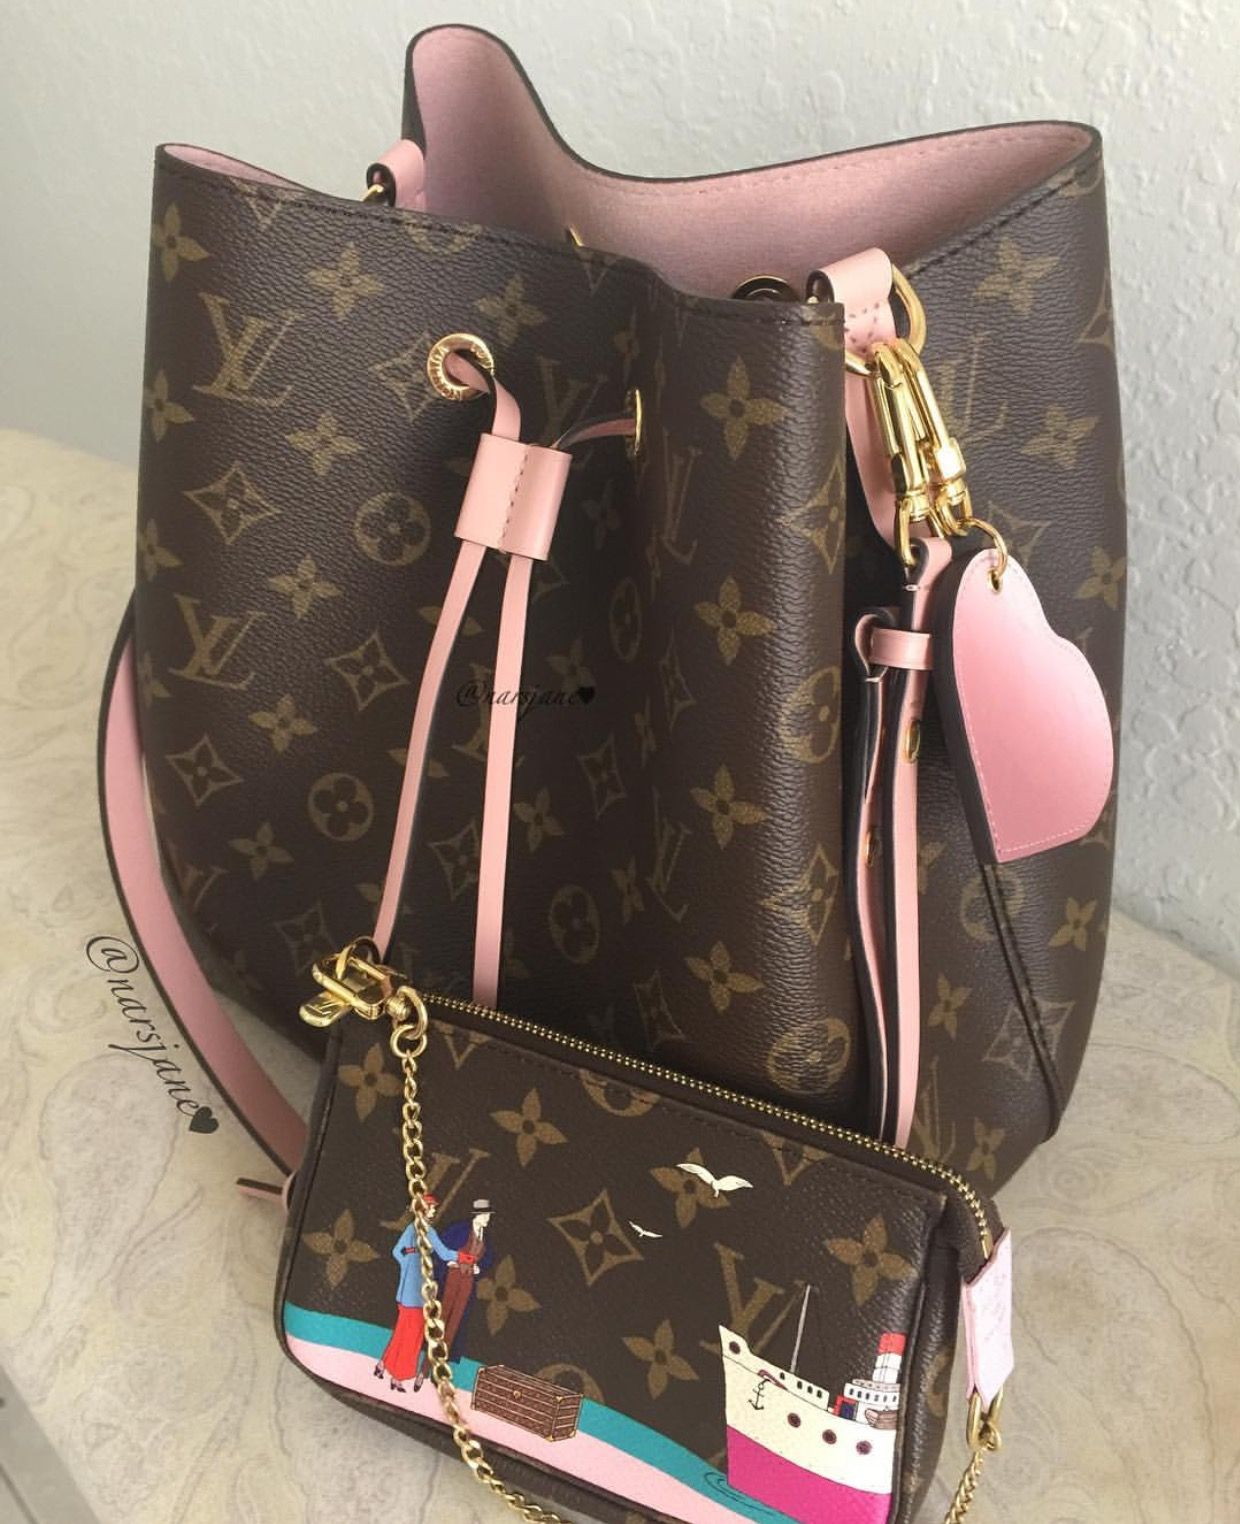 cc7bfe51dfad Louis Vuitton with pastel pink  Luxurydotcom   Bag Addiction   Louis ...